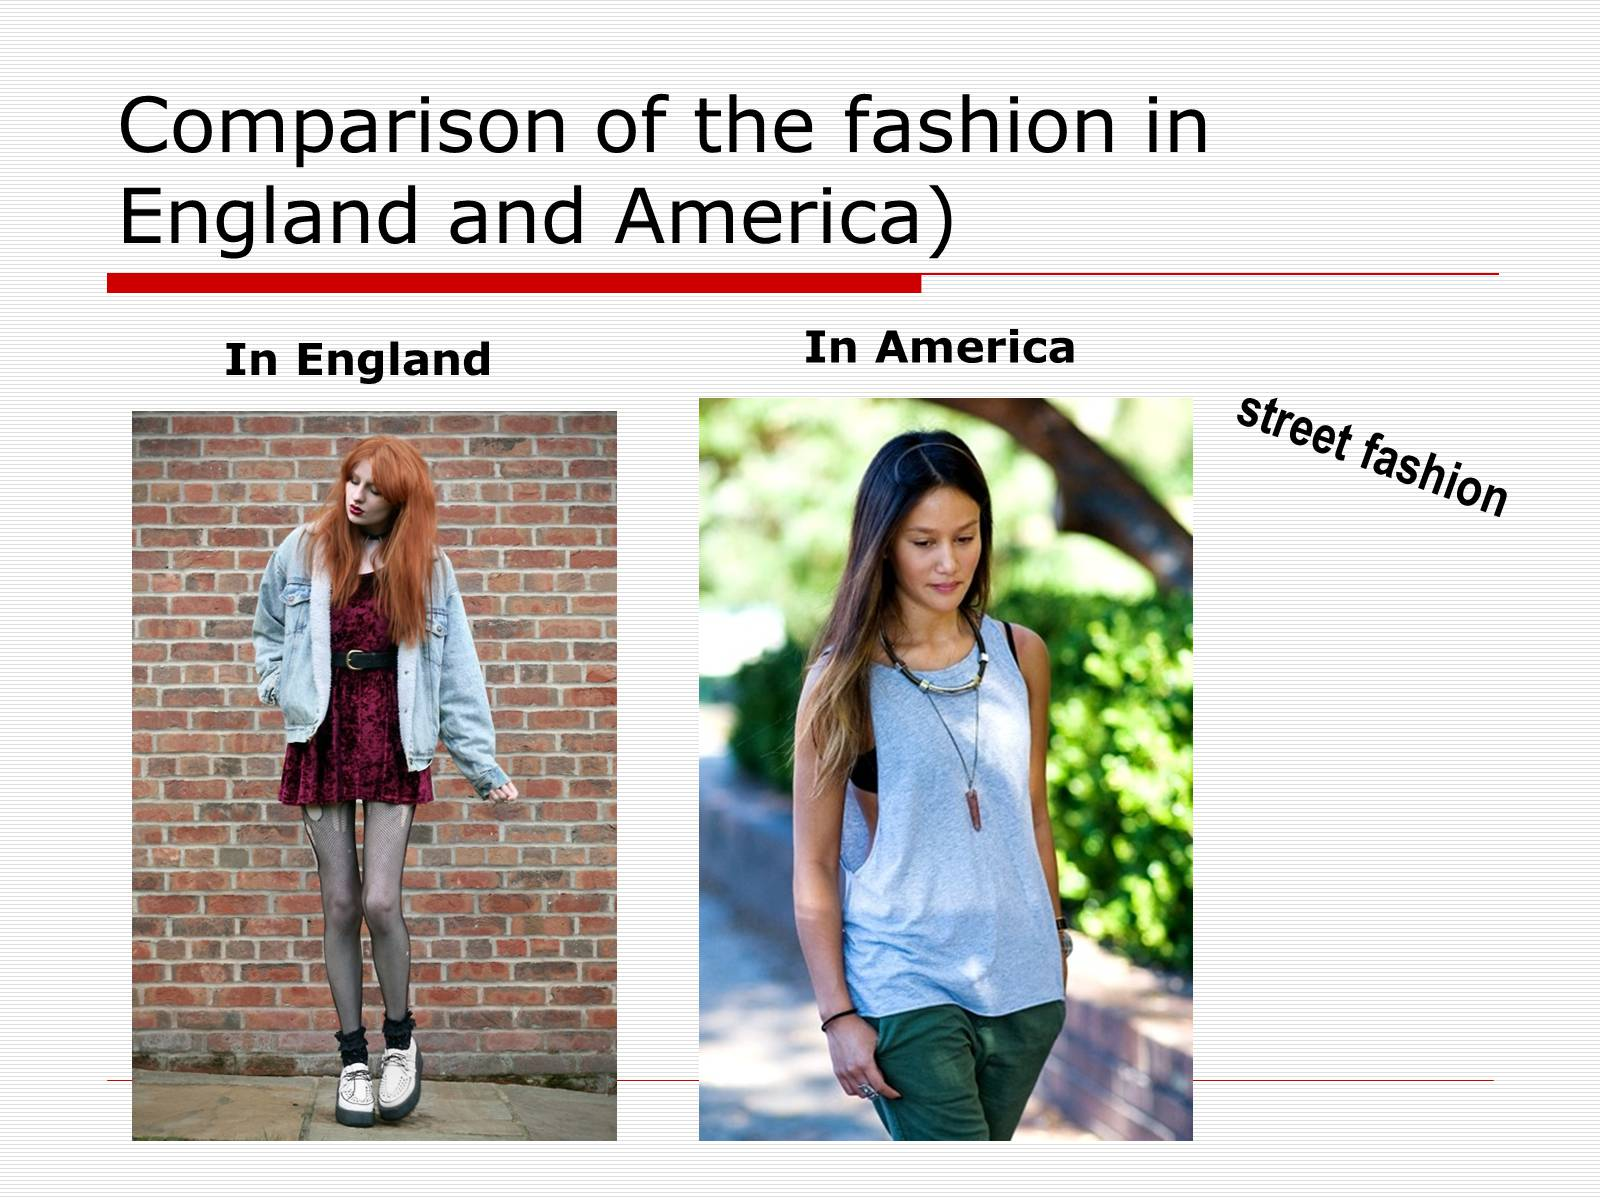 Презентація на тему «Comparison of the fashion in England and America» - Слайд #41